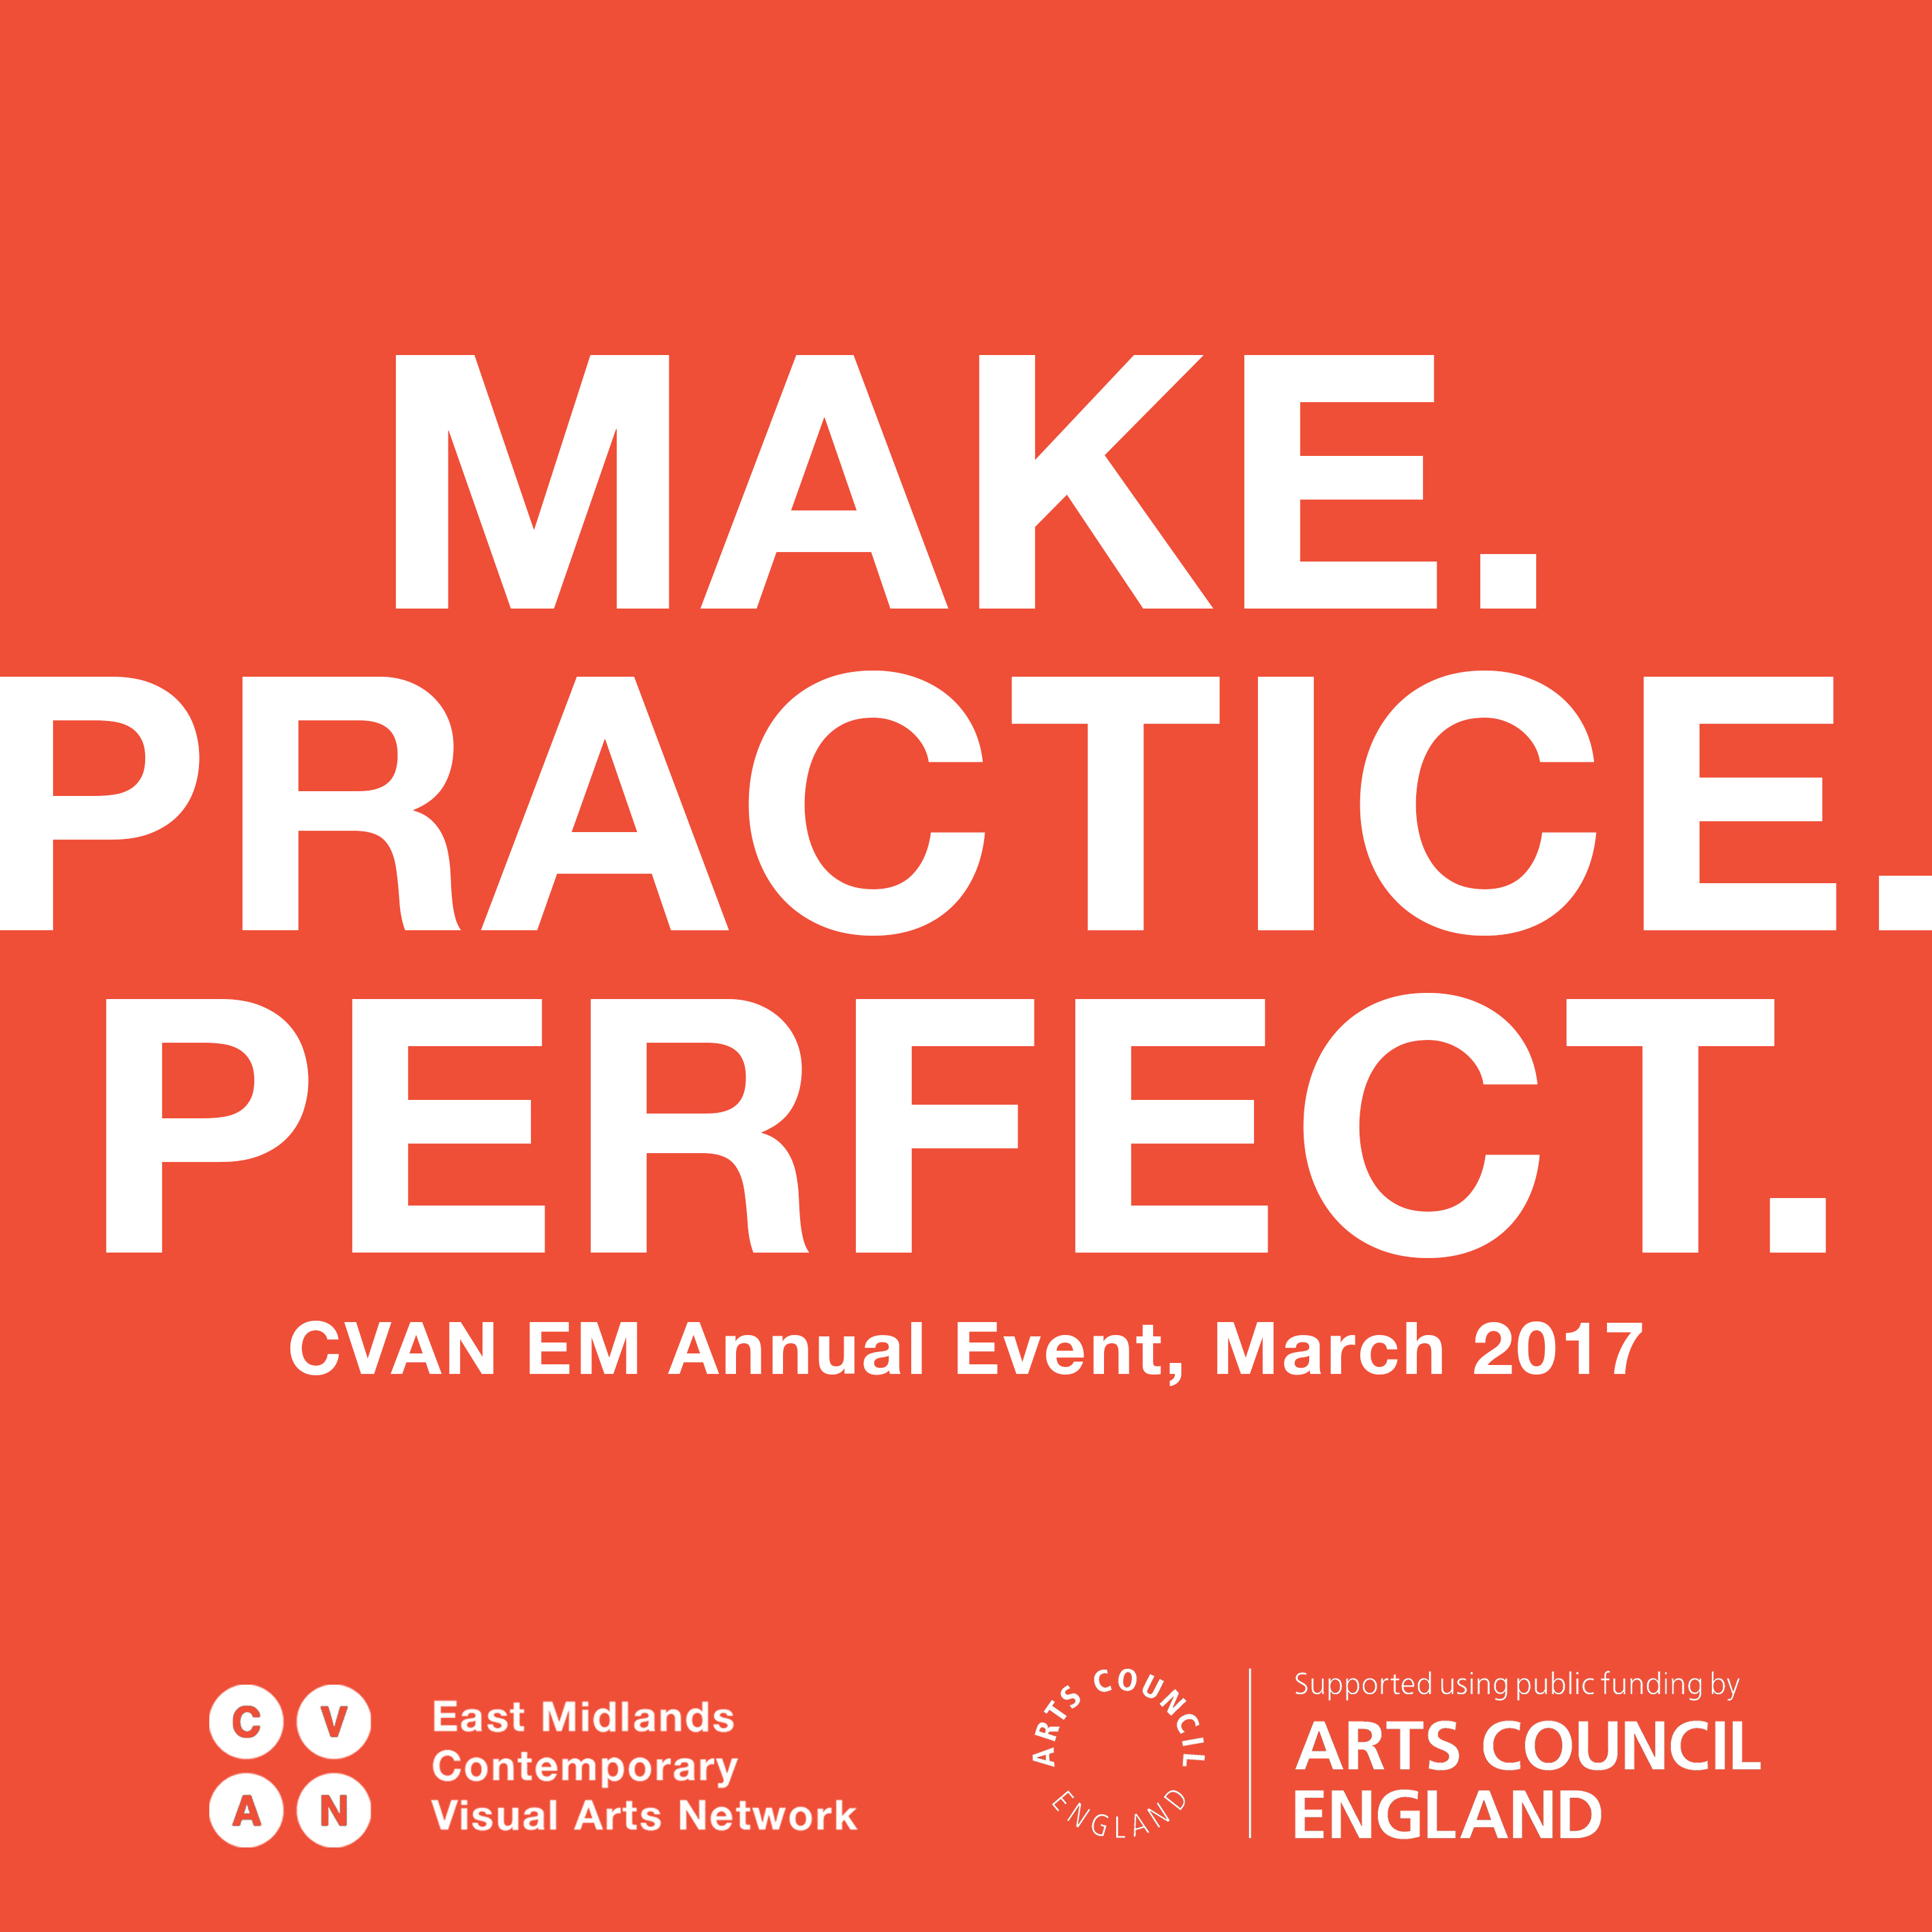 Make.Practice.Perfect: What we heard and saw and did